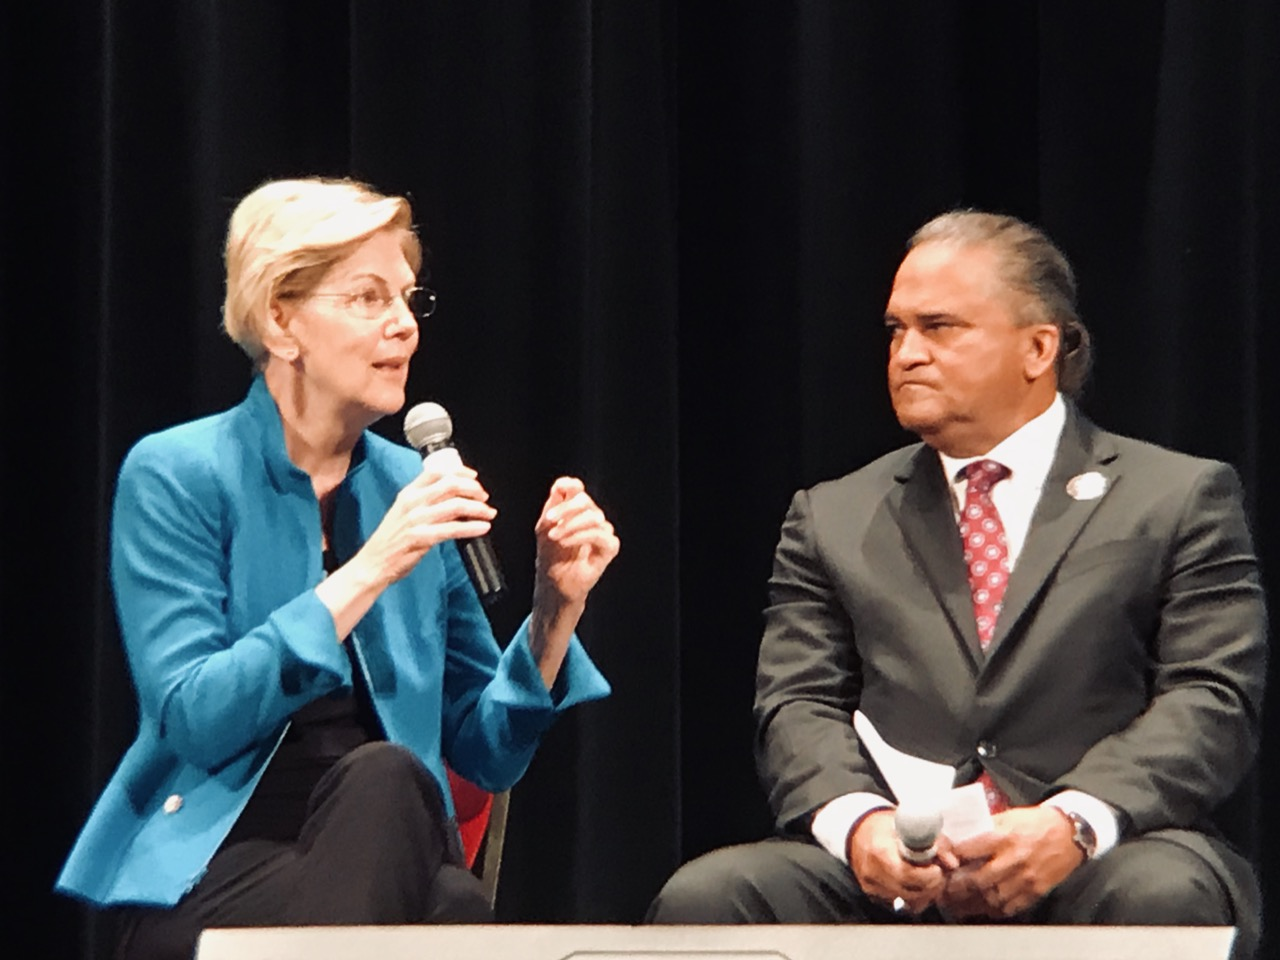 AUDIO/VIDEO: Elizabeth Warren at Frank LaMere Native American Presidential Forum